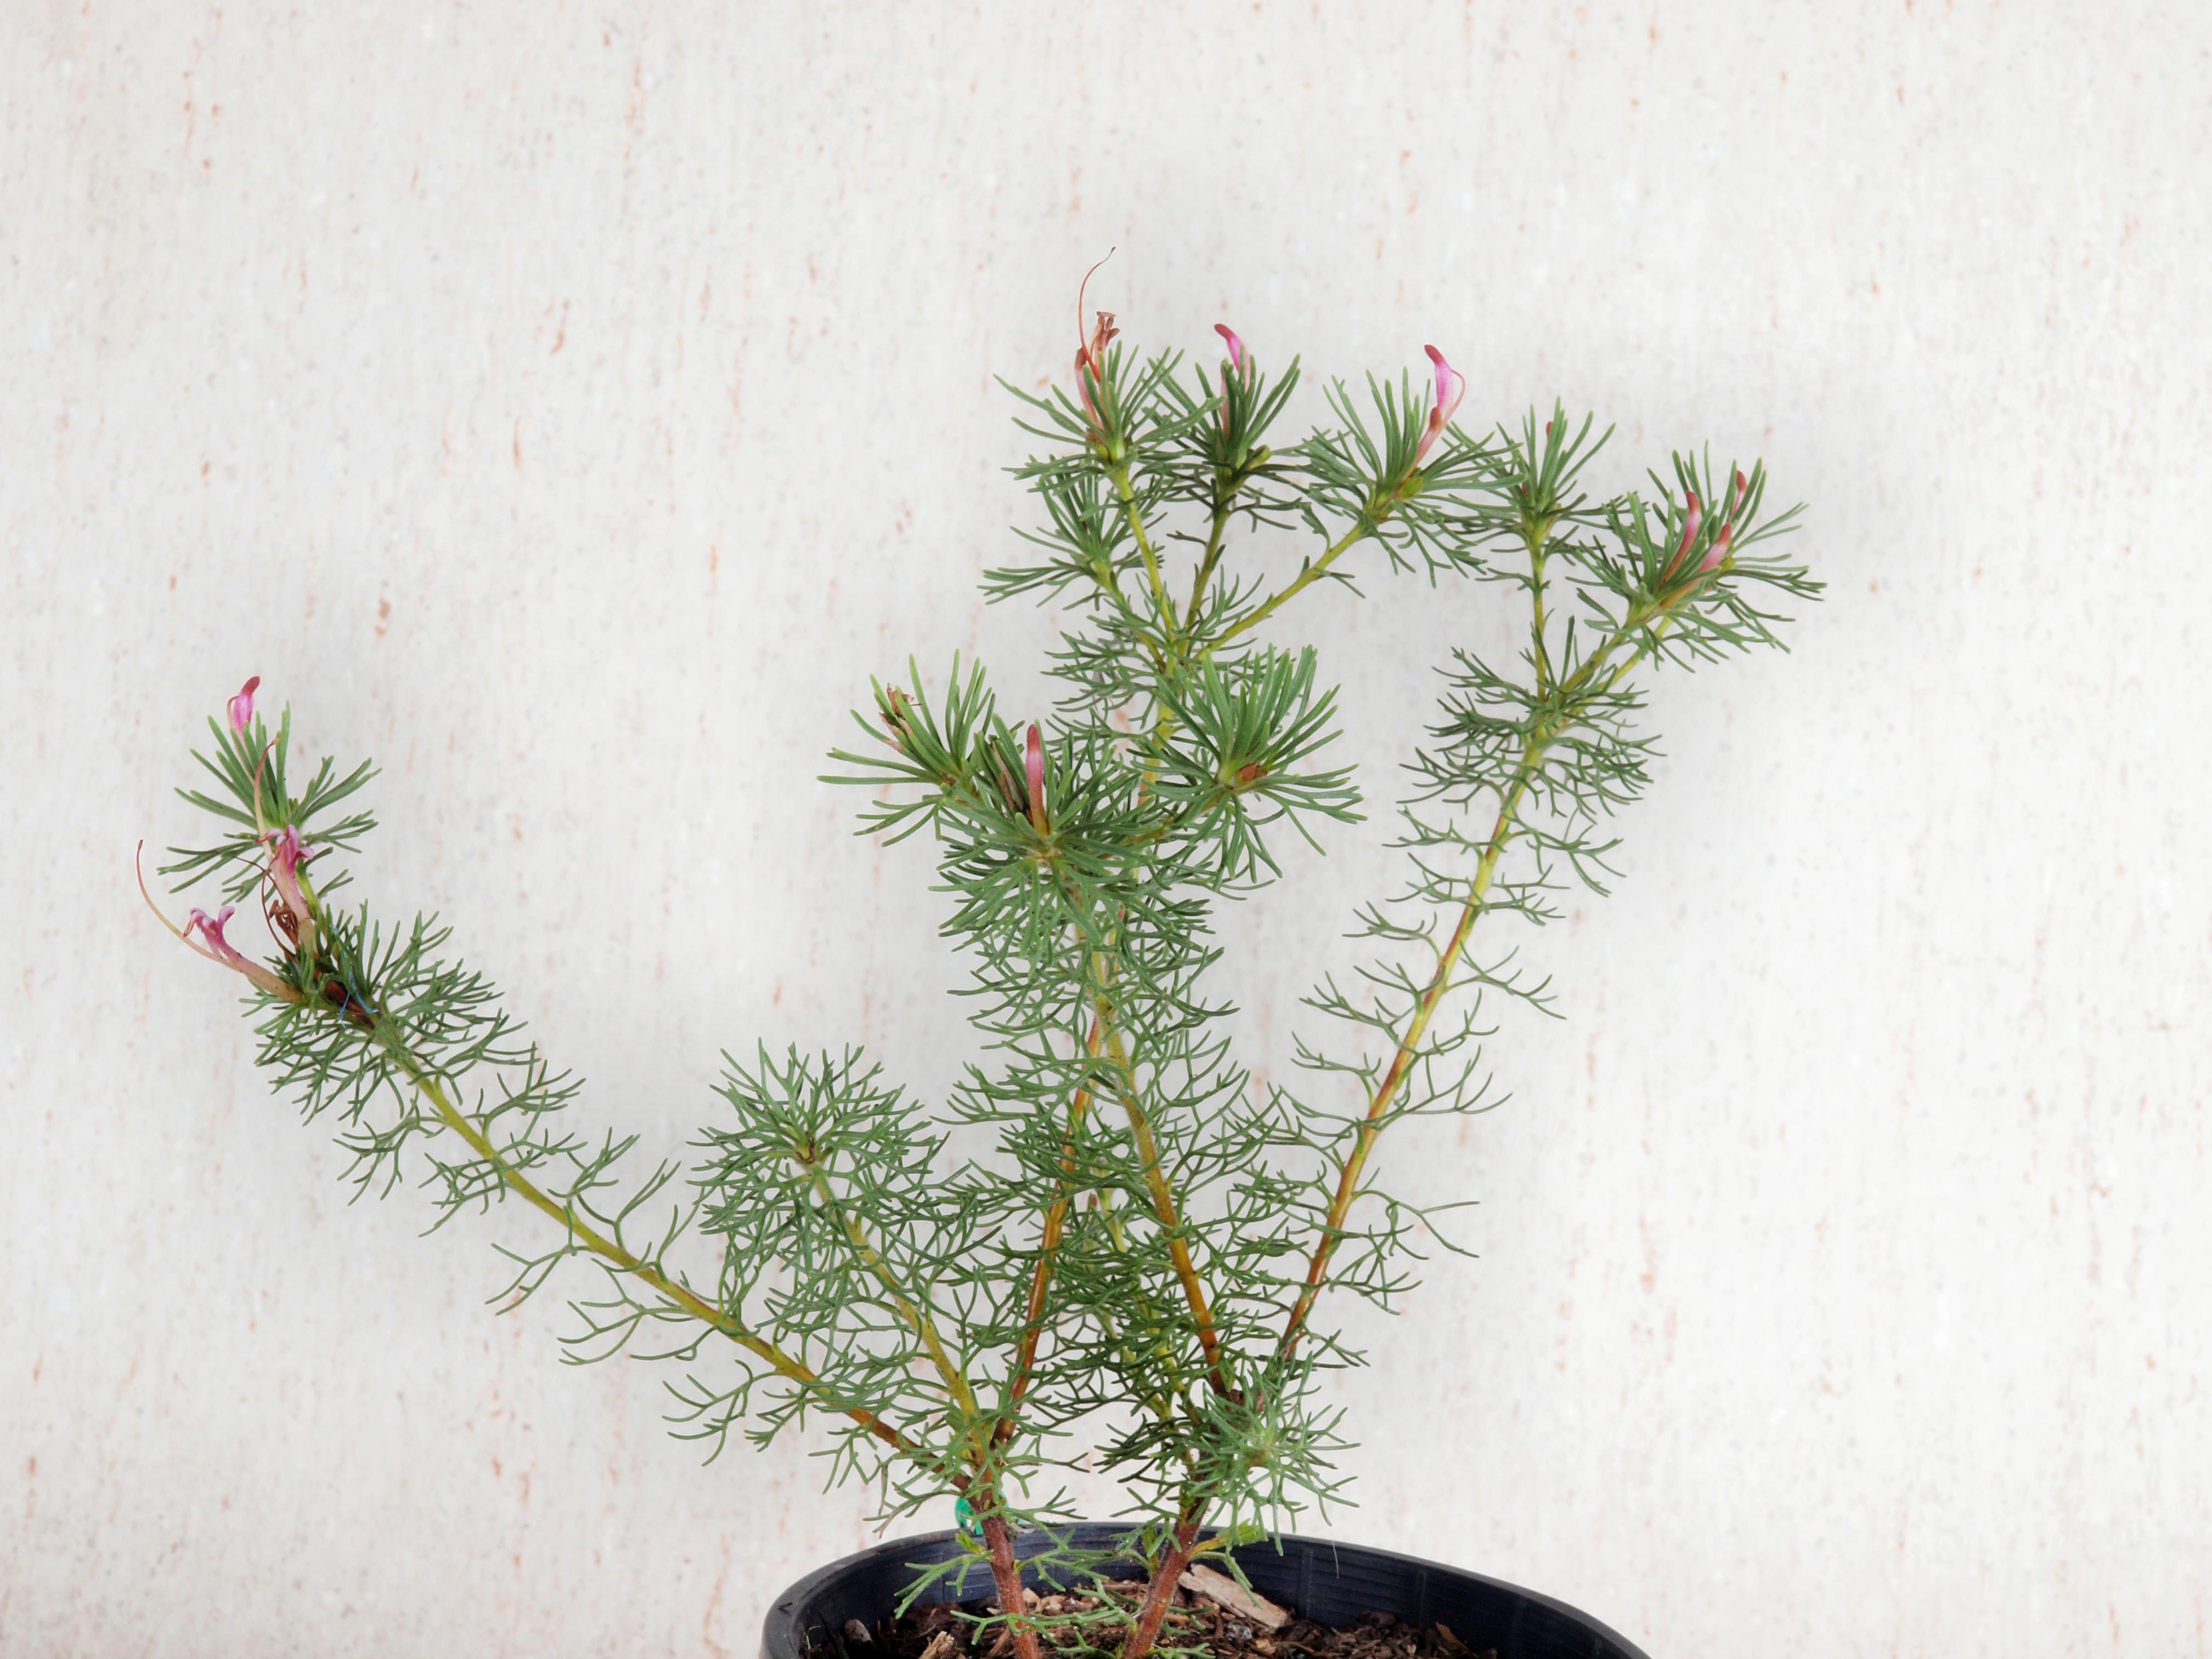 This should be Adenanthos-cunninghamii-1.jpeg.  Is it missing?